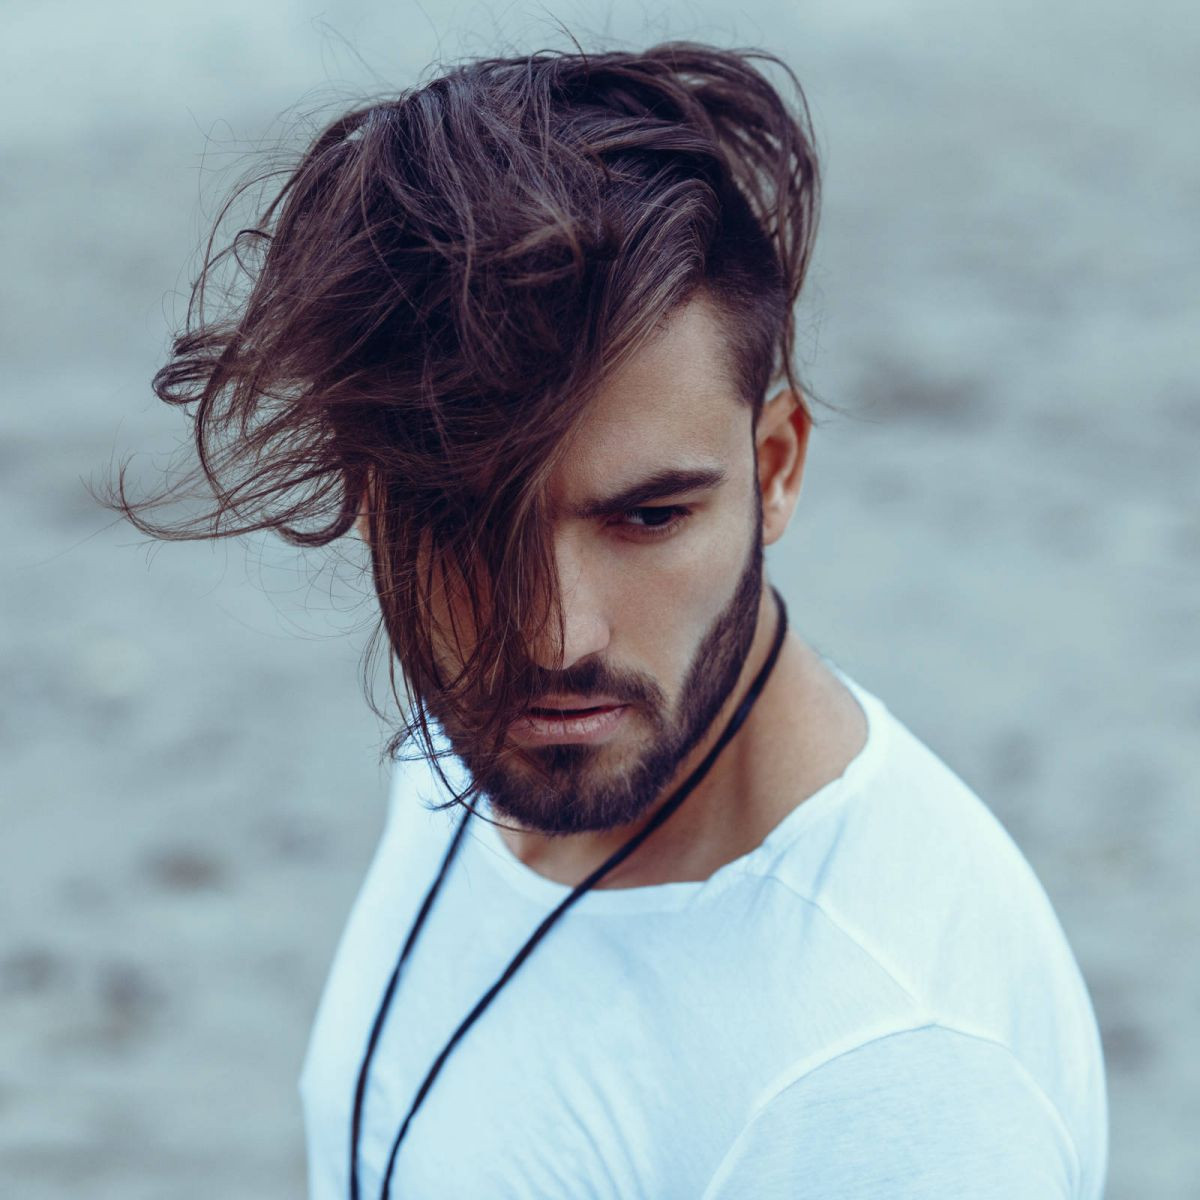 Handsome Hairstyles For Men: 23+ Best Long Hairstyles For Men